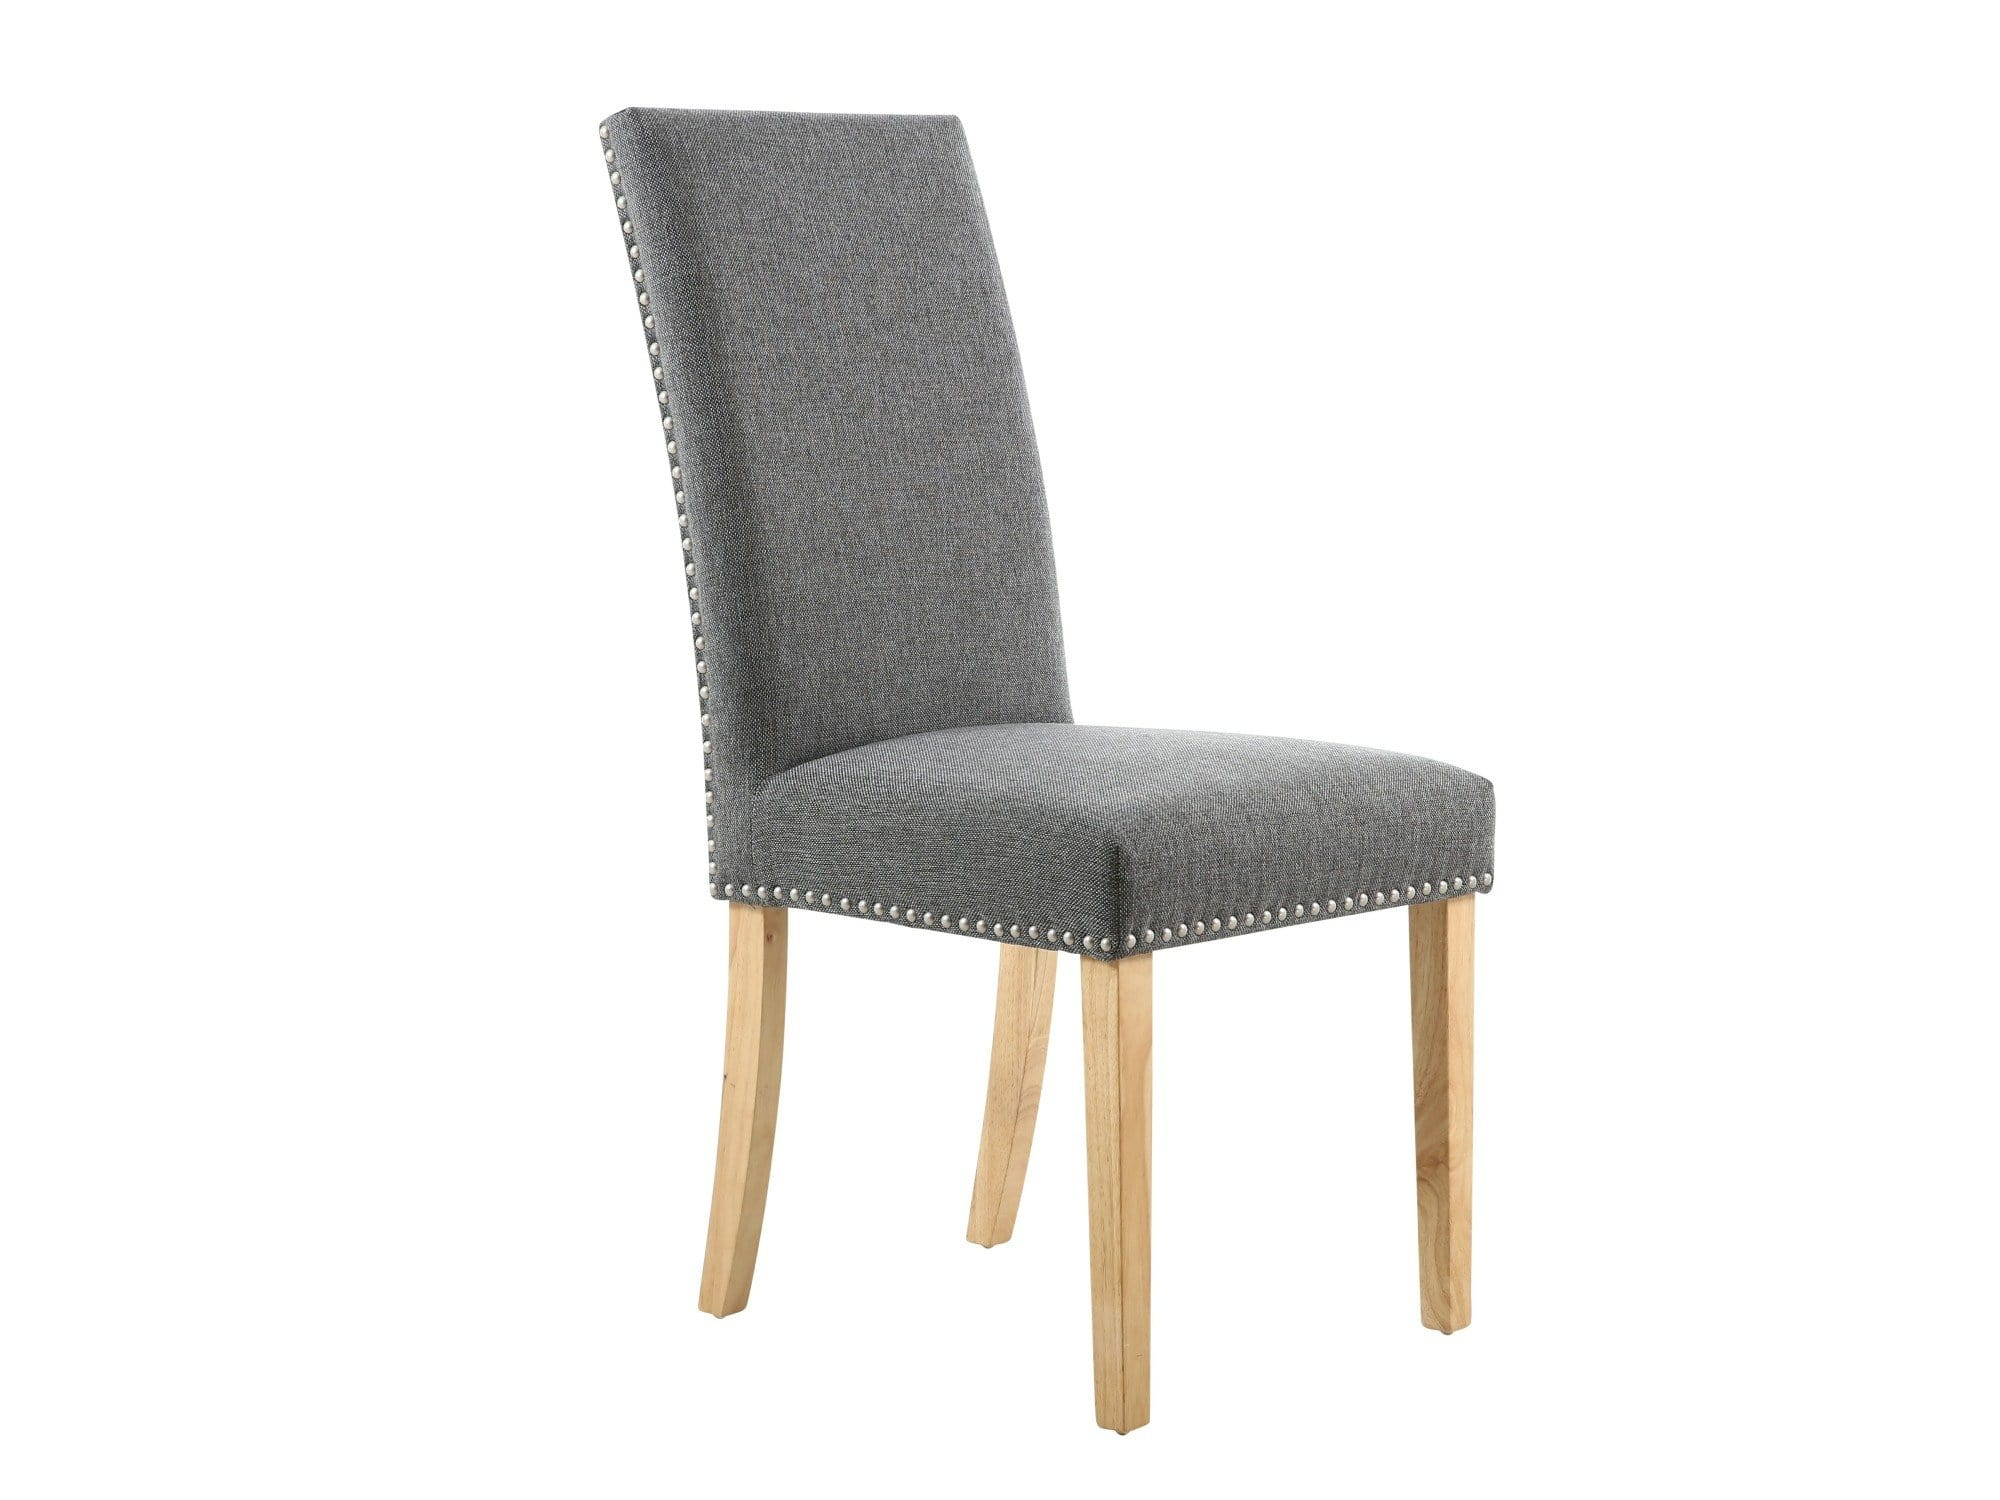 Modern dining chair upholstered in dark grey linen fabric with decorative chrome studs